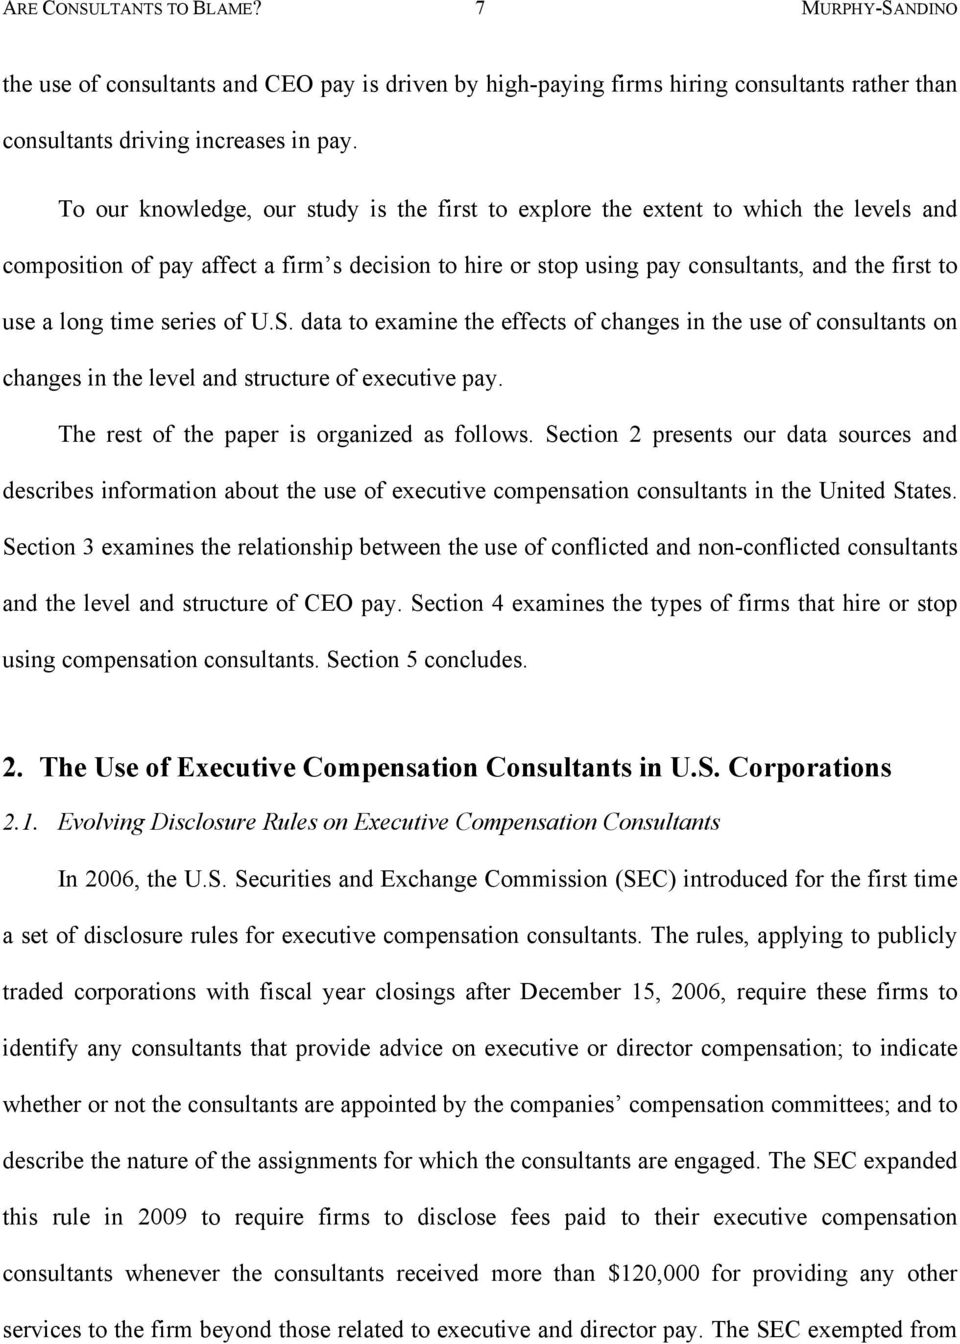 time series of U.S. data to examine the effects of changes in the use of consultants on changes in the level and structure of executive pay. The rest of the paper is organized as follows.